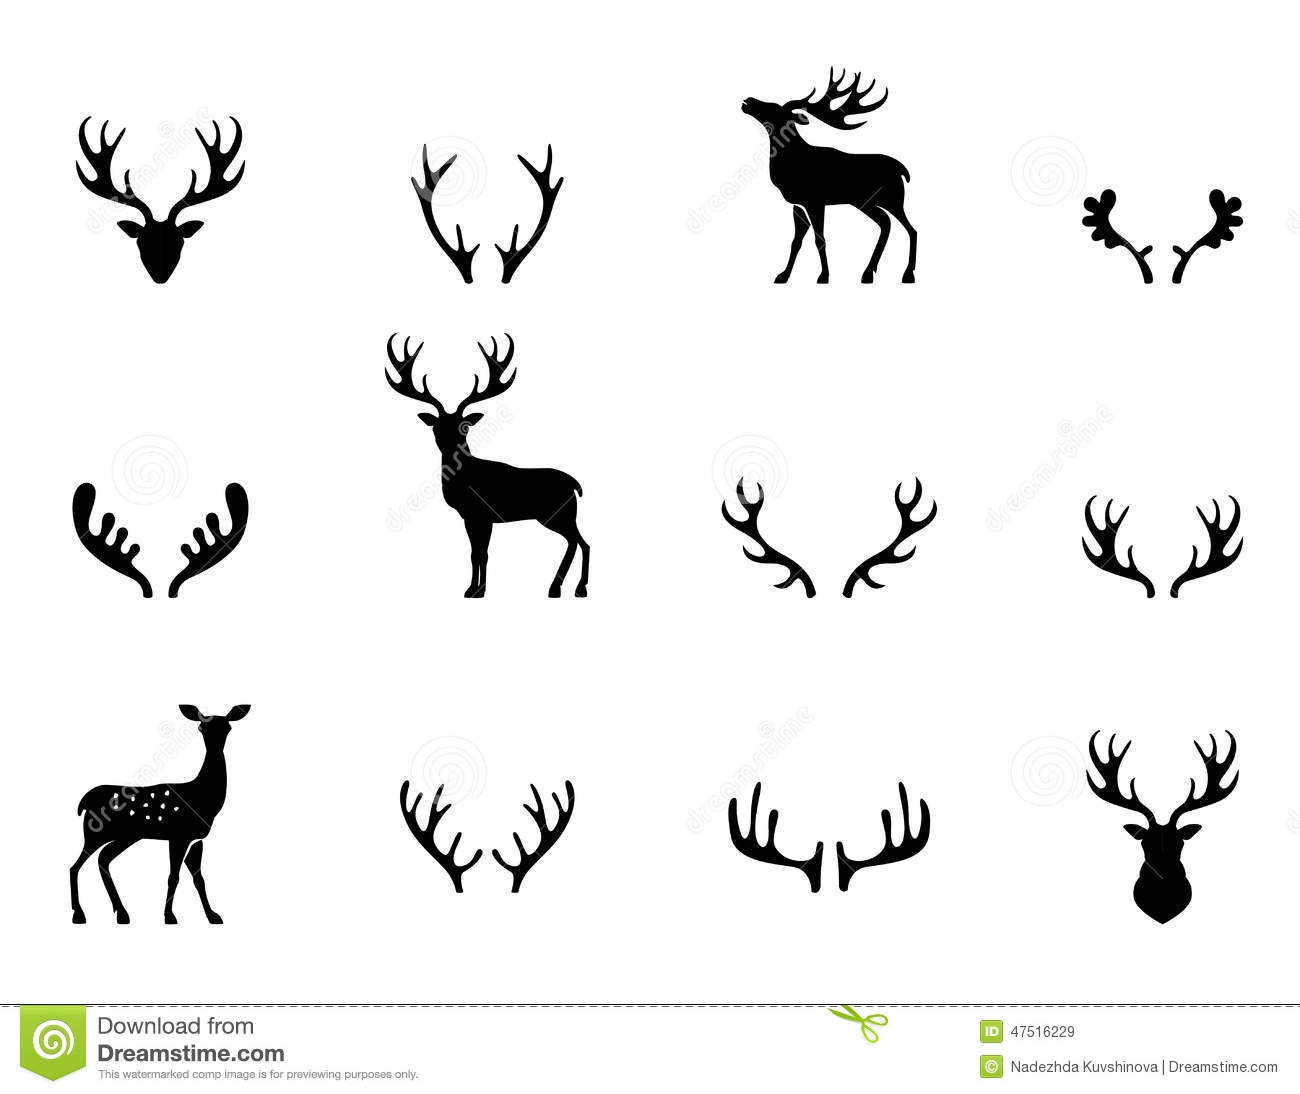 Stock Illustration Silhouettes Deer Moose Horns Vector Illustration Isolated White Background Image41445100 further Stock Illustration Vector Illustration Dotted Head Deer Antlers Roses Leaves Black Isolated White Background Animal Floral Image76689780 further Head Of Deer With Horns 10736925 likewise Stock Illustration Deer Antlers Horns Icon In furthermore Tattoo Ciervo. on black deer antlers